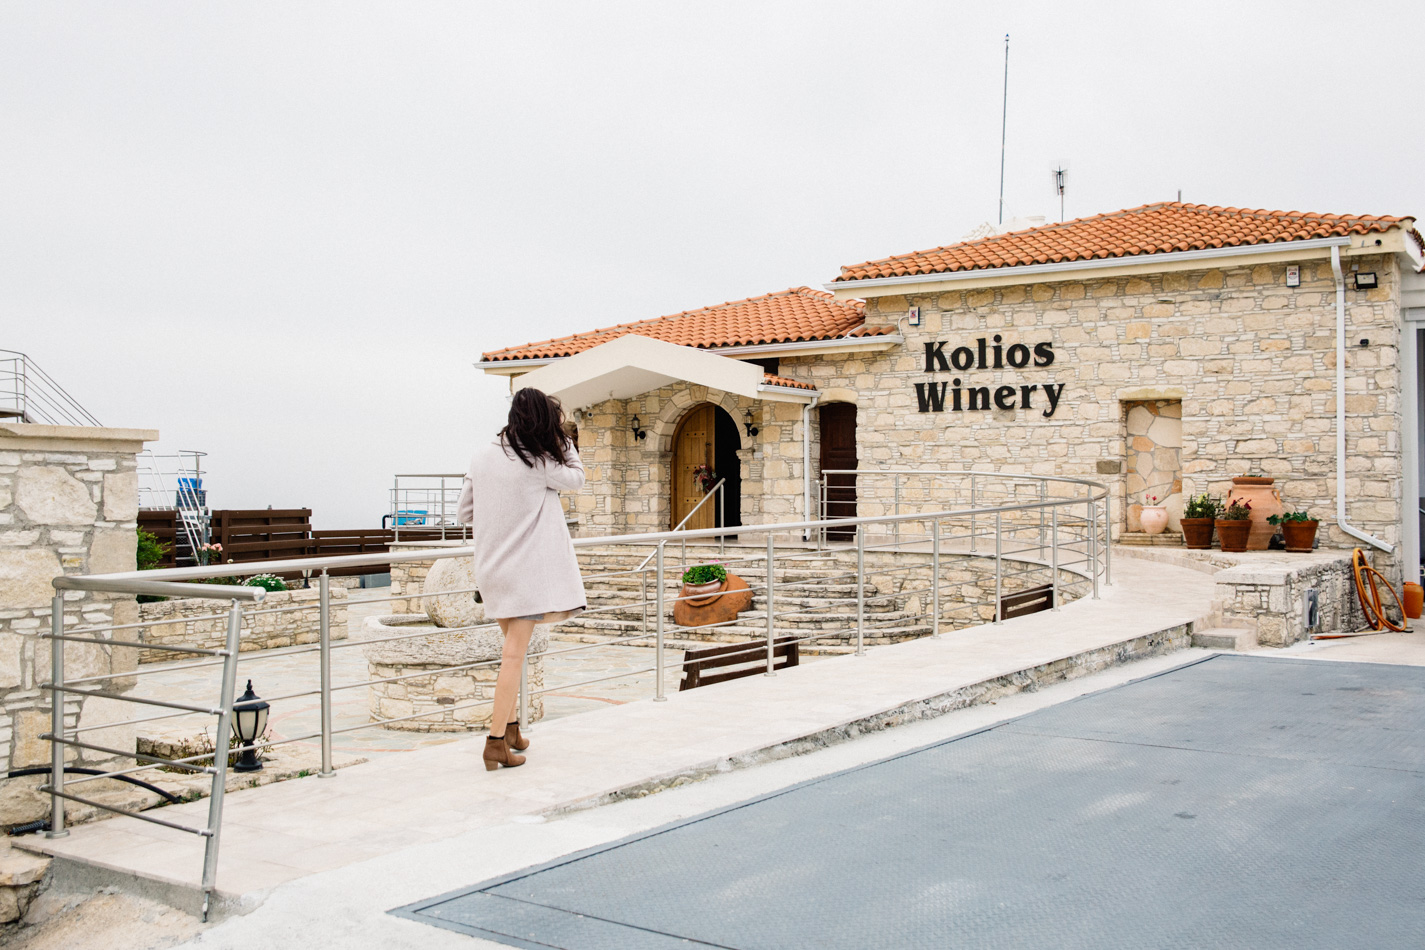 kolios winery